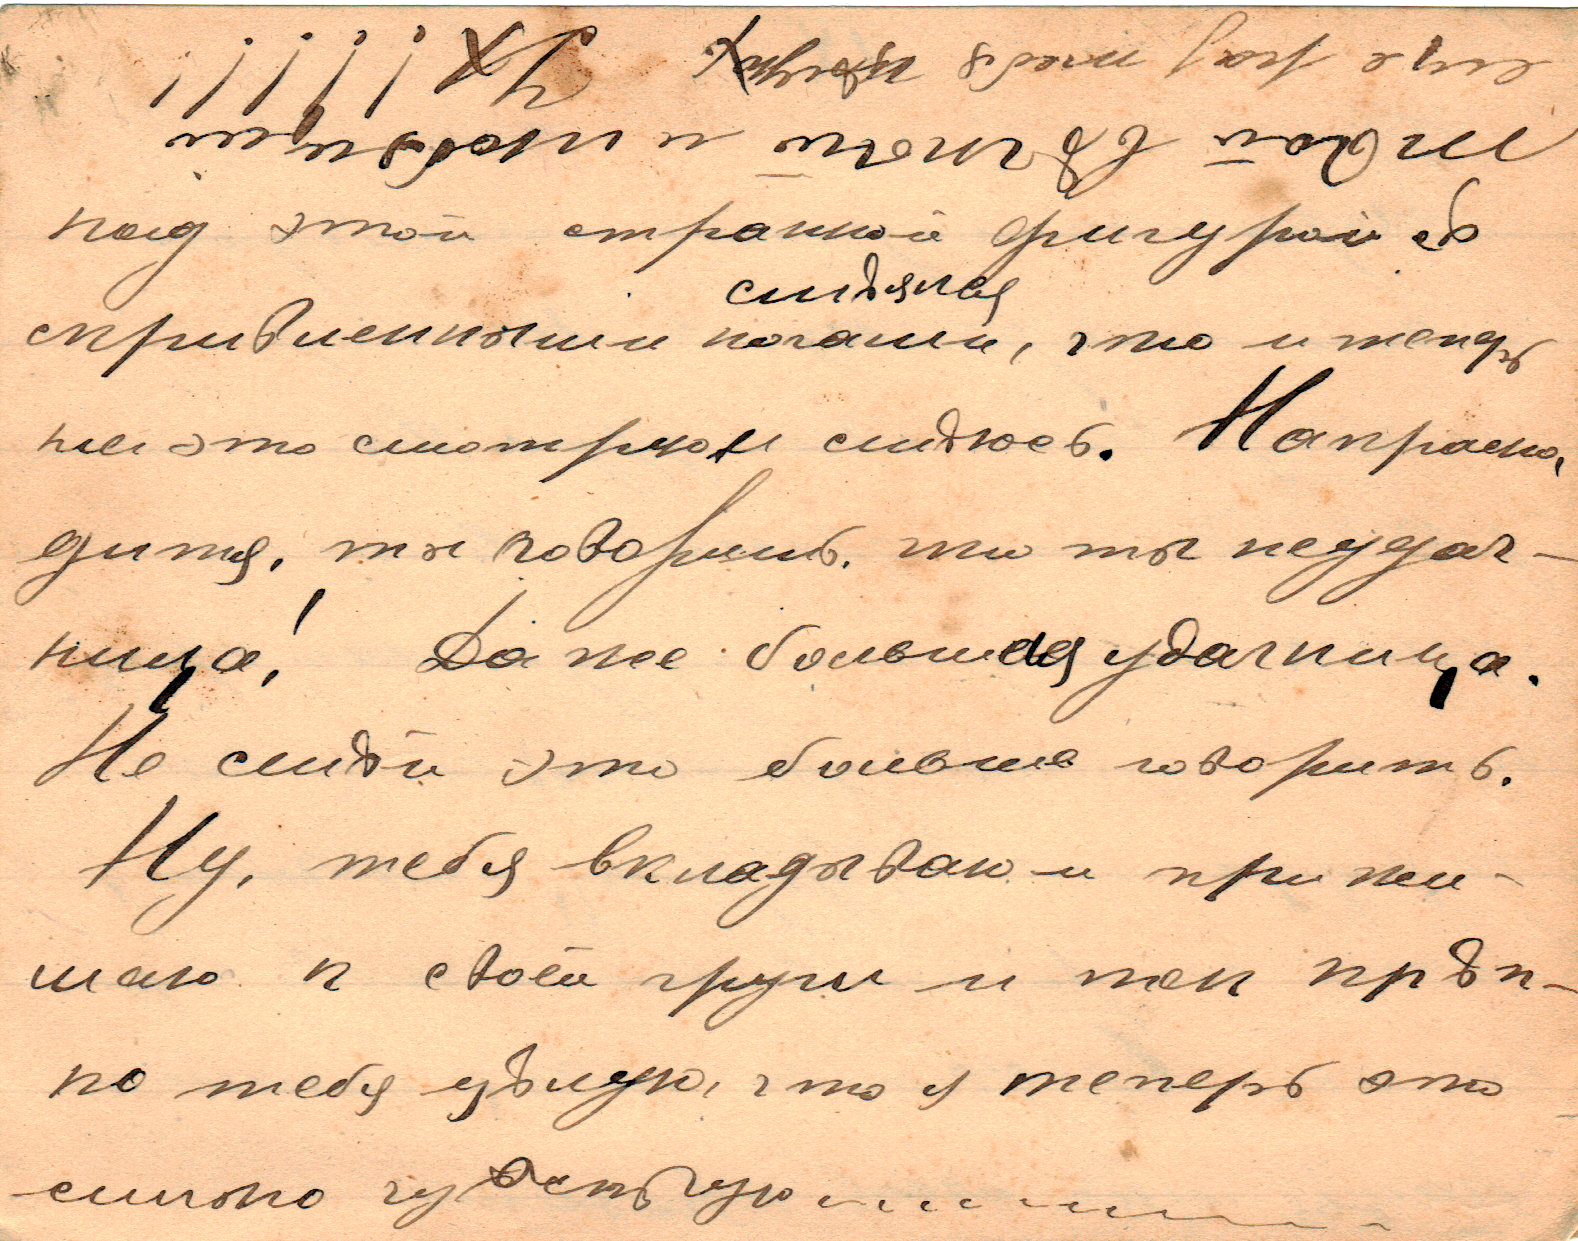 Letter to Poline from Aron April 24, 1914 p10